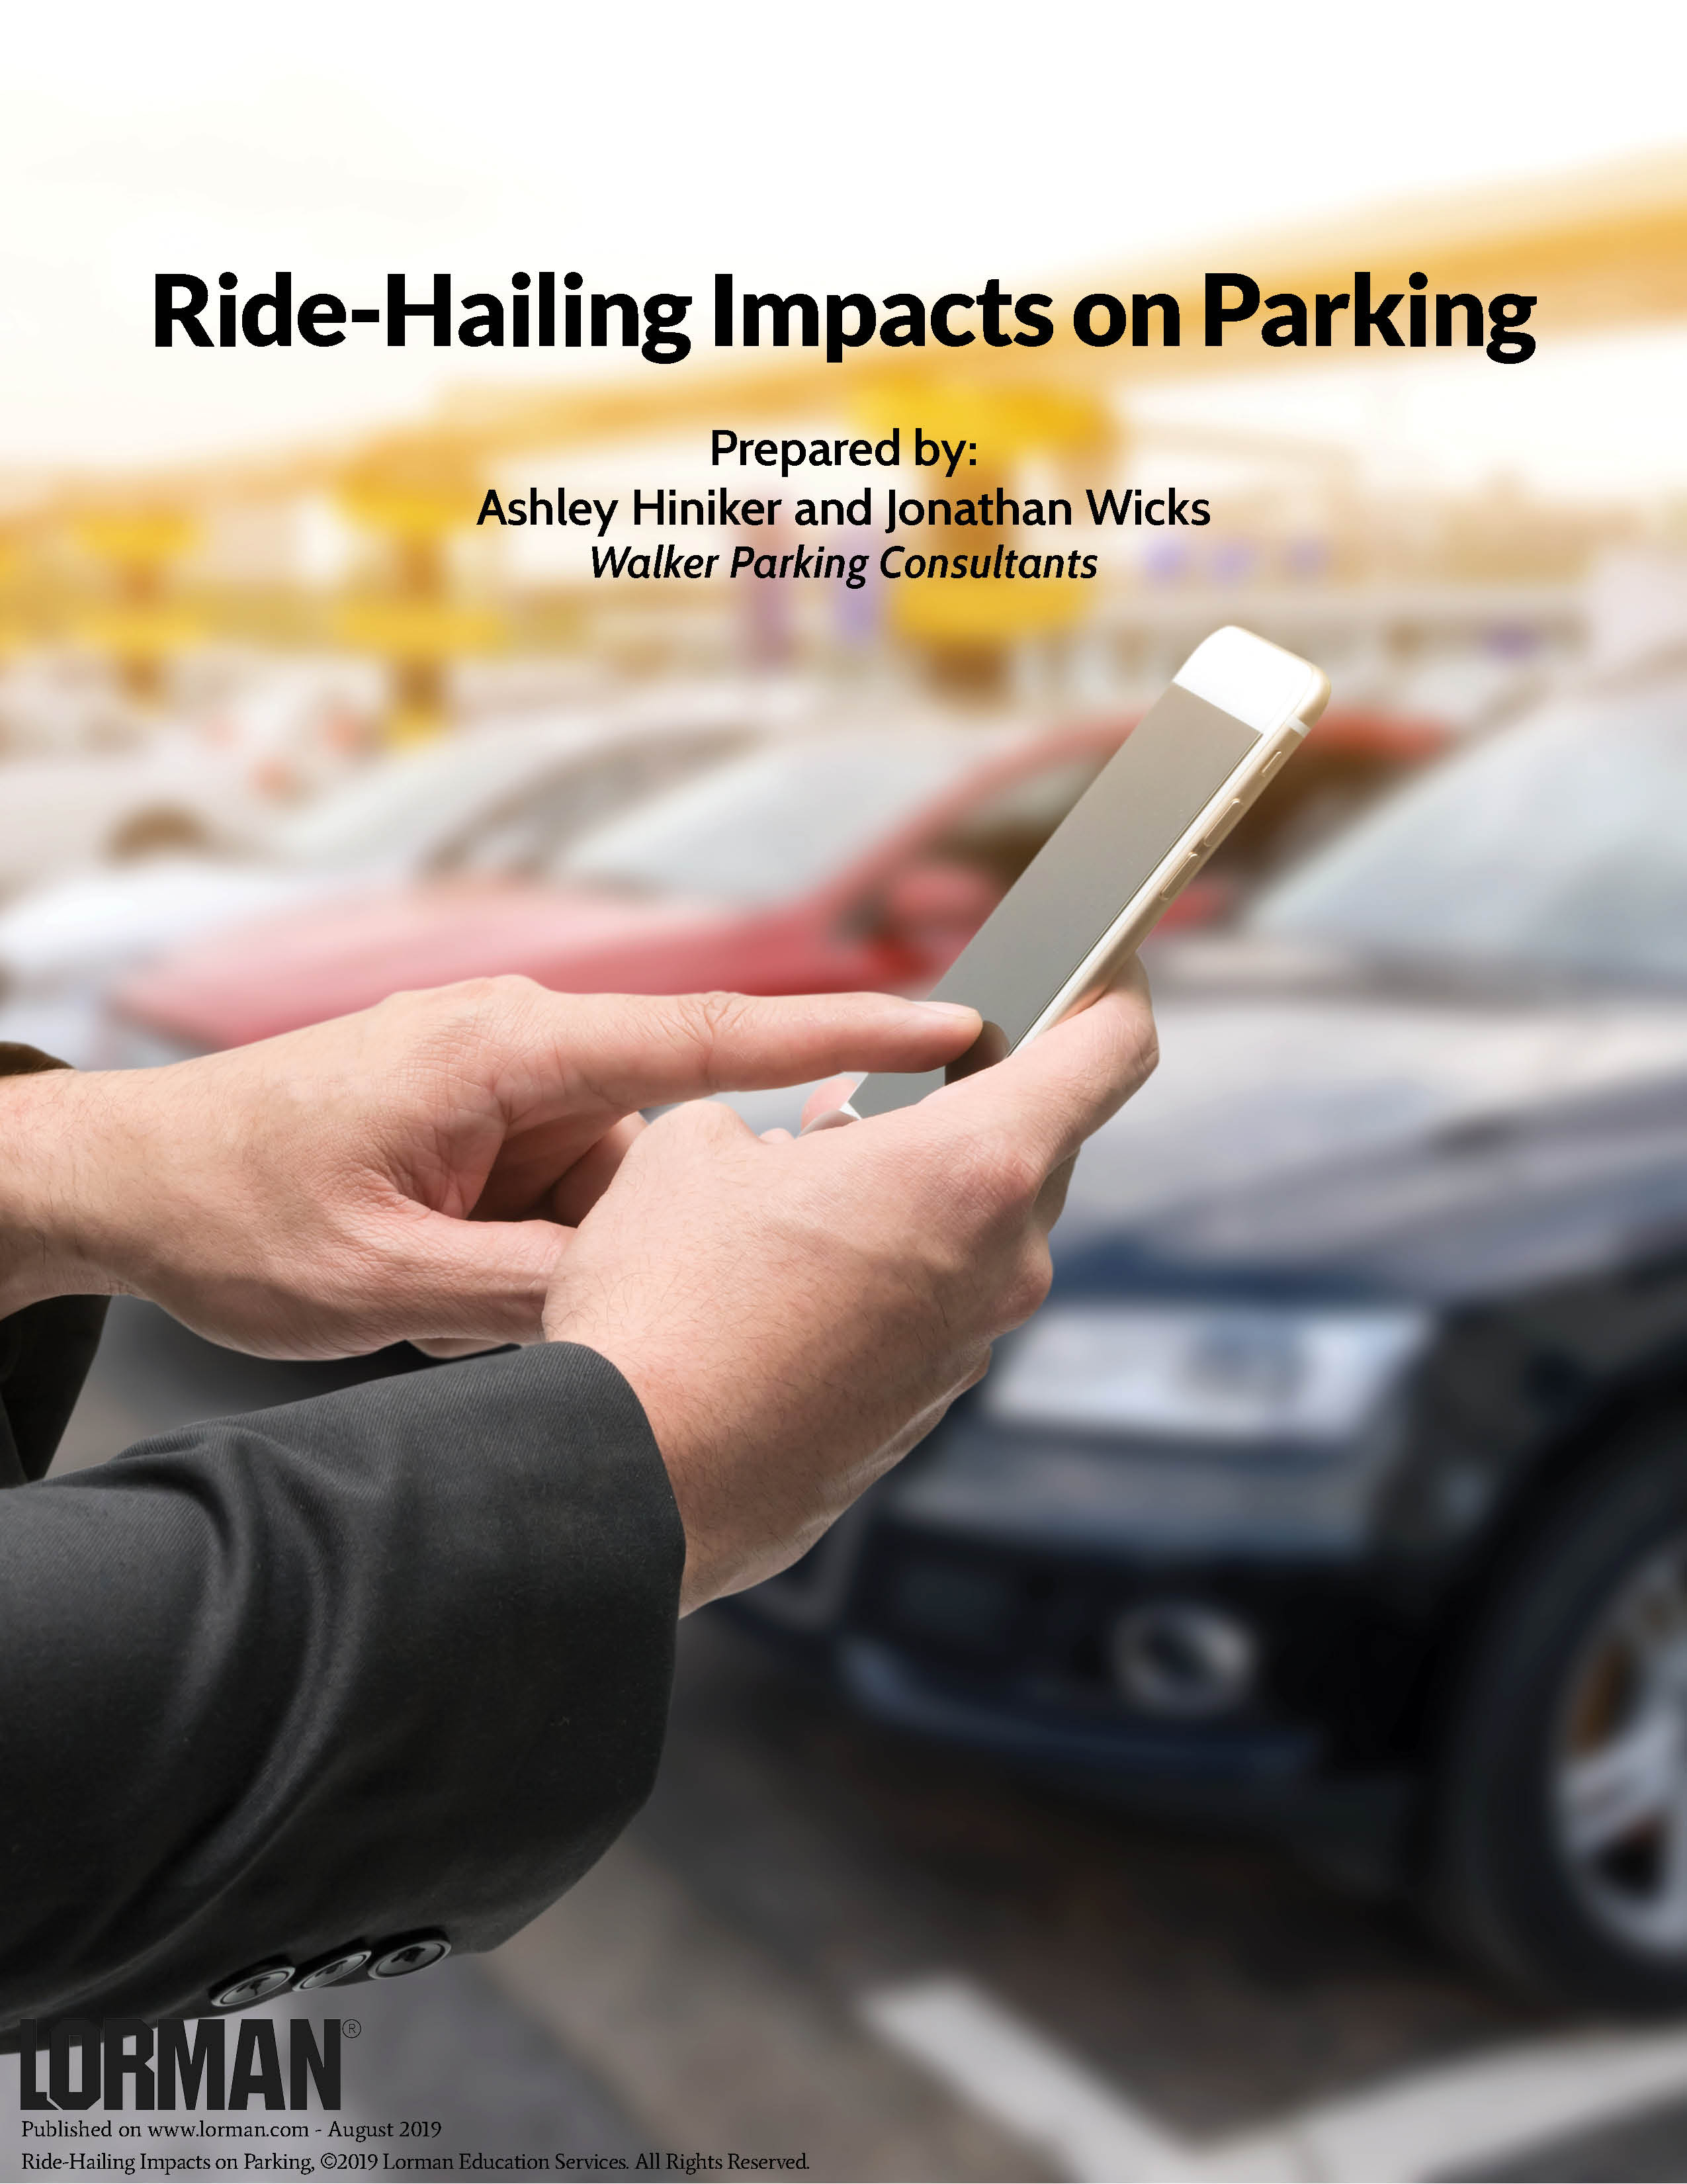 Ride-Hailing Impacts on Parking